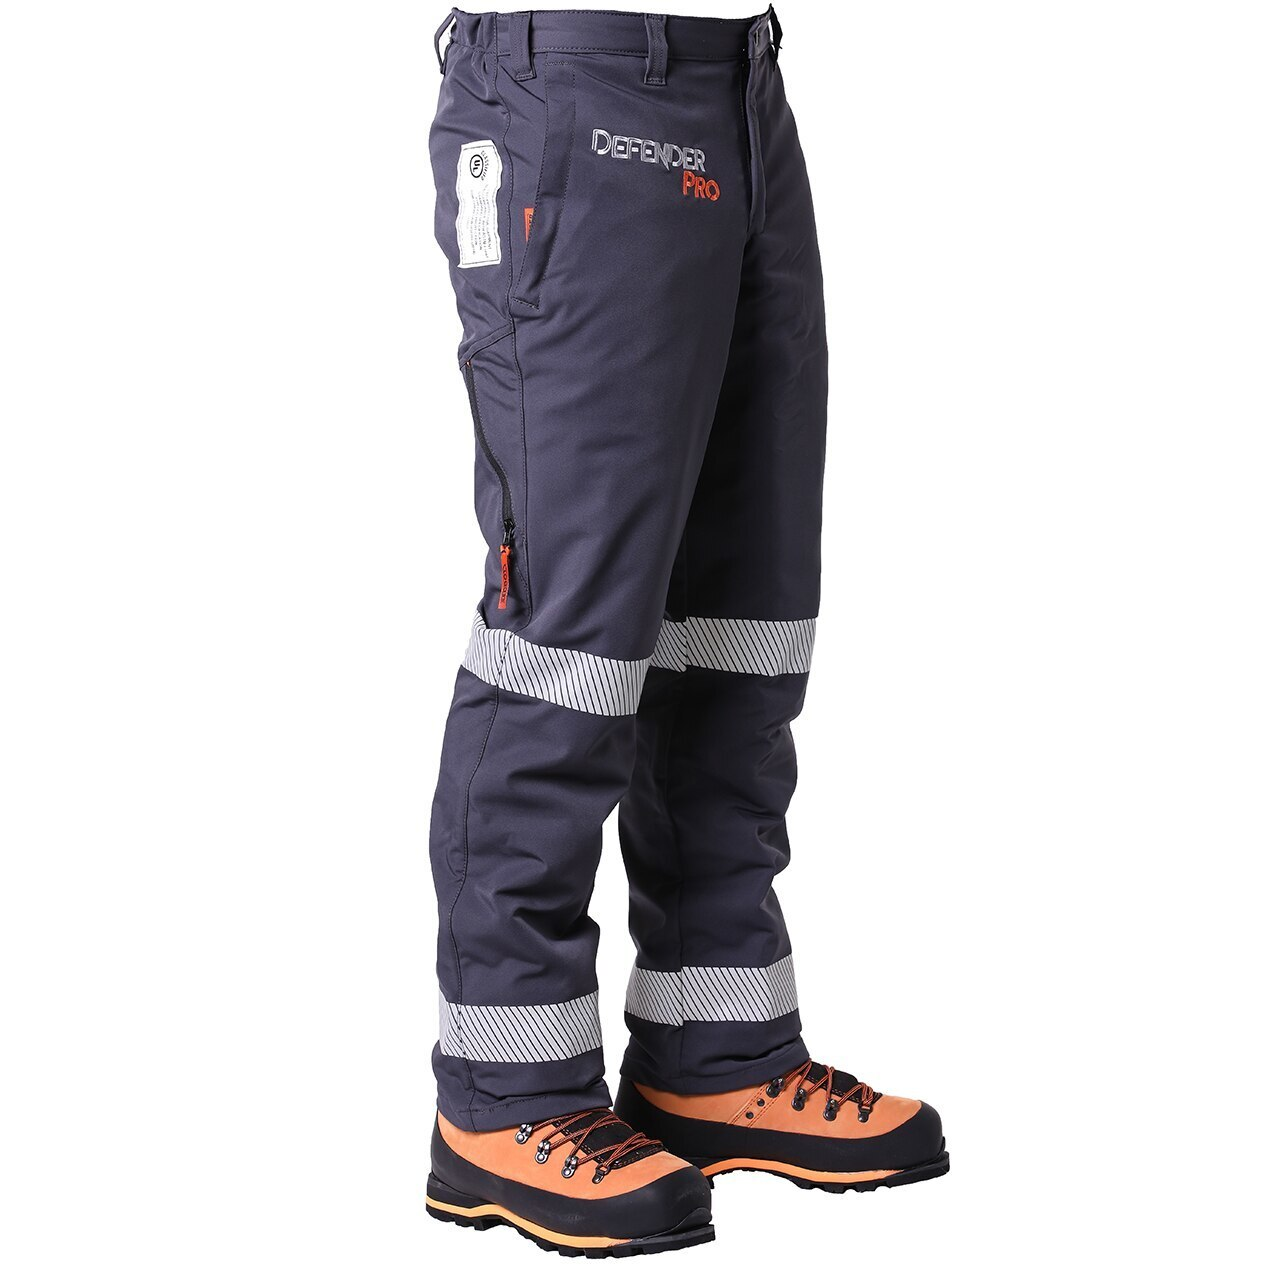 Clogger DefenderPRO Tough Chainsaw Pants Now With Vents and Reflective Hoops